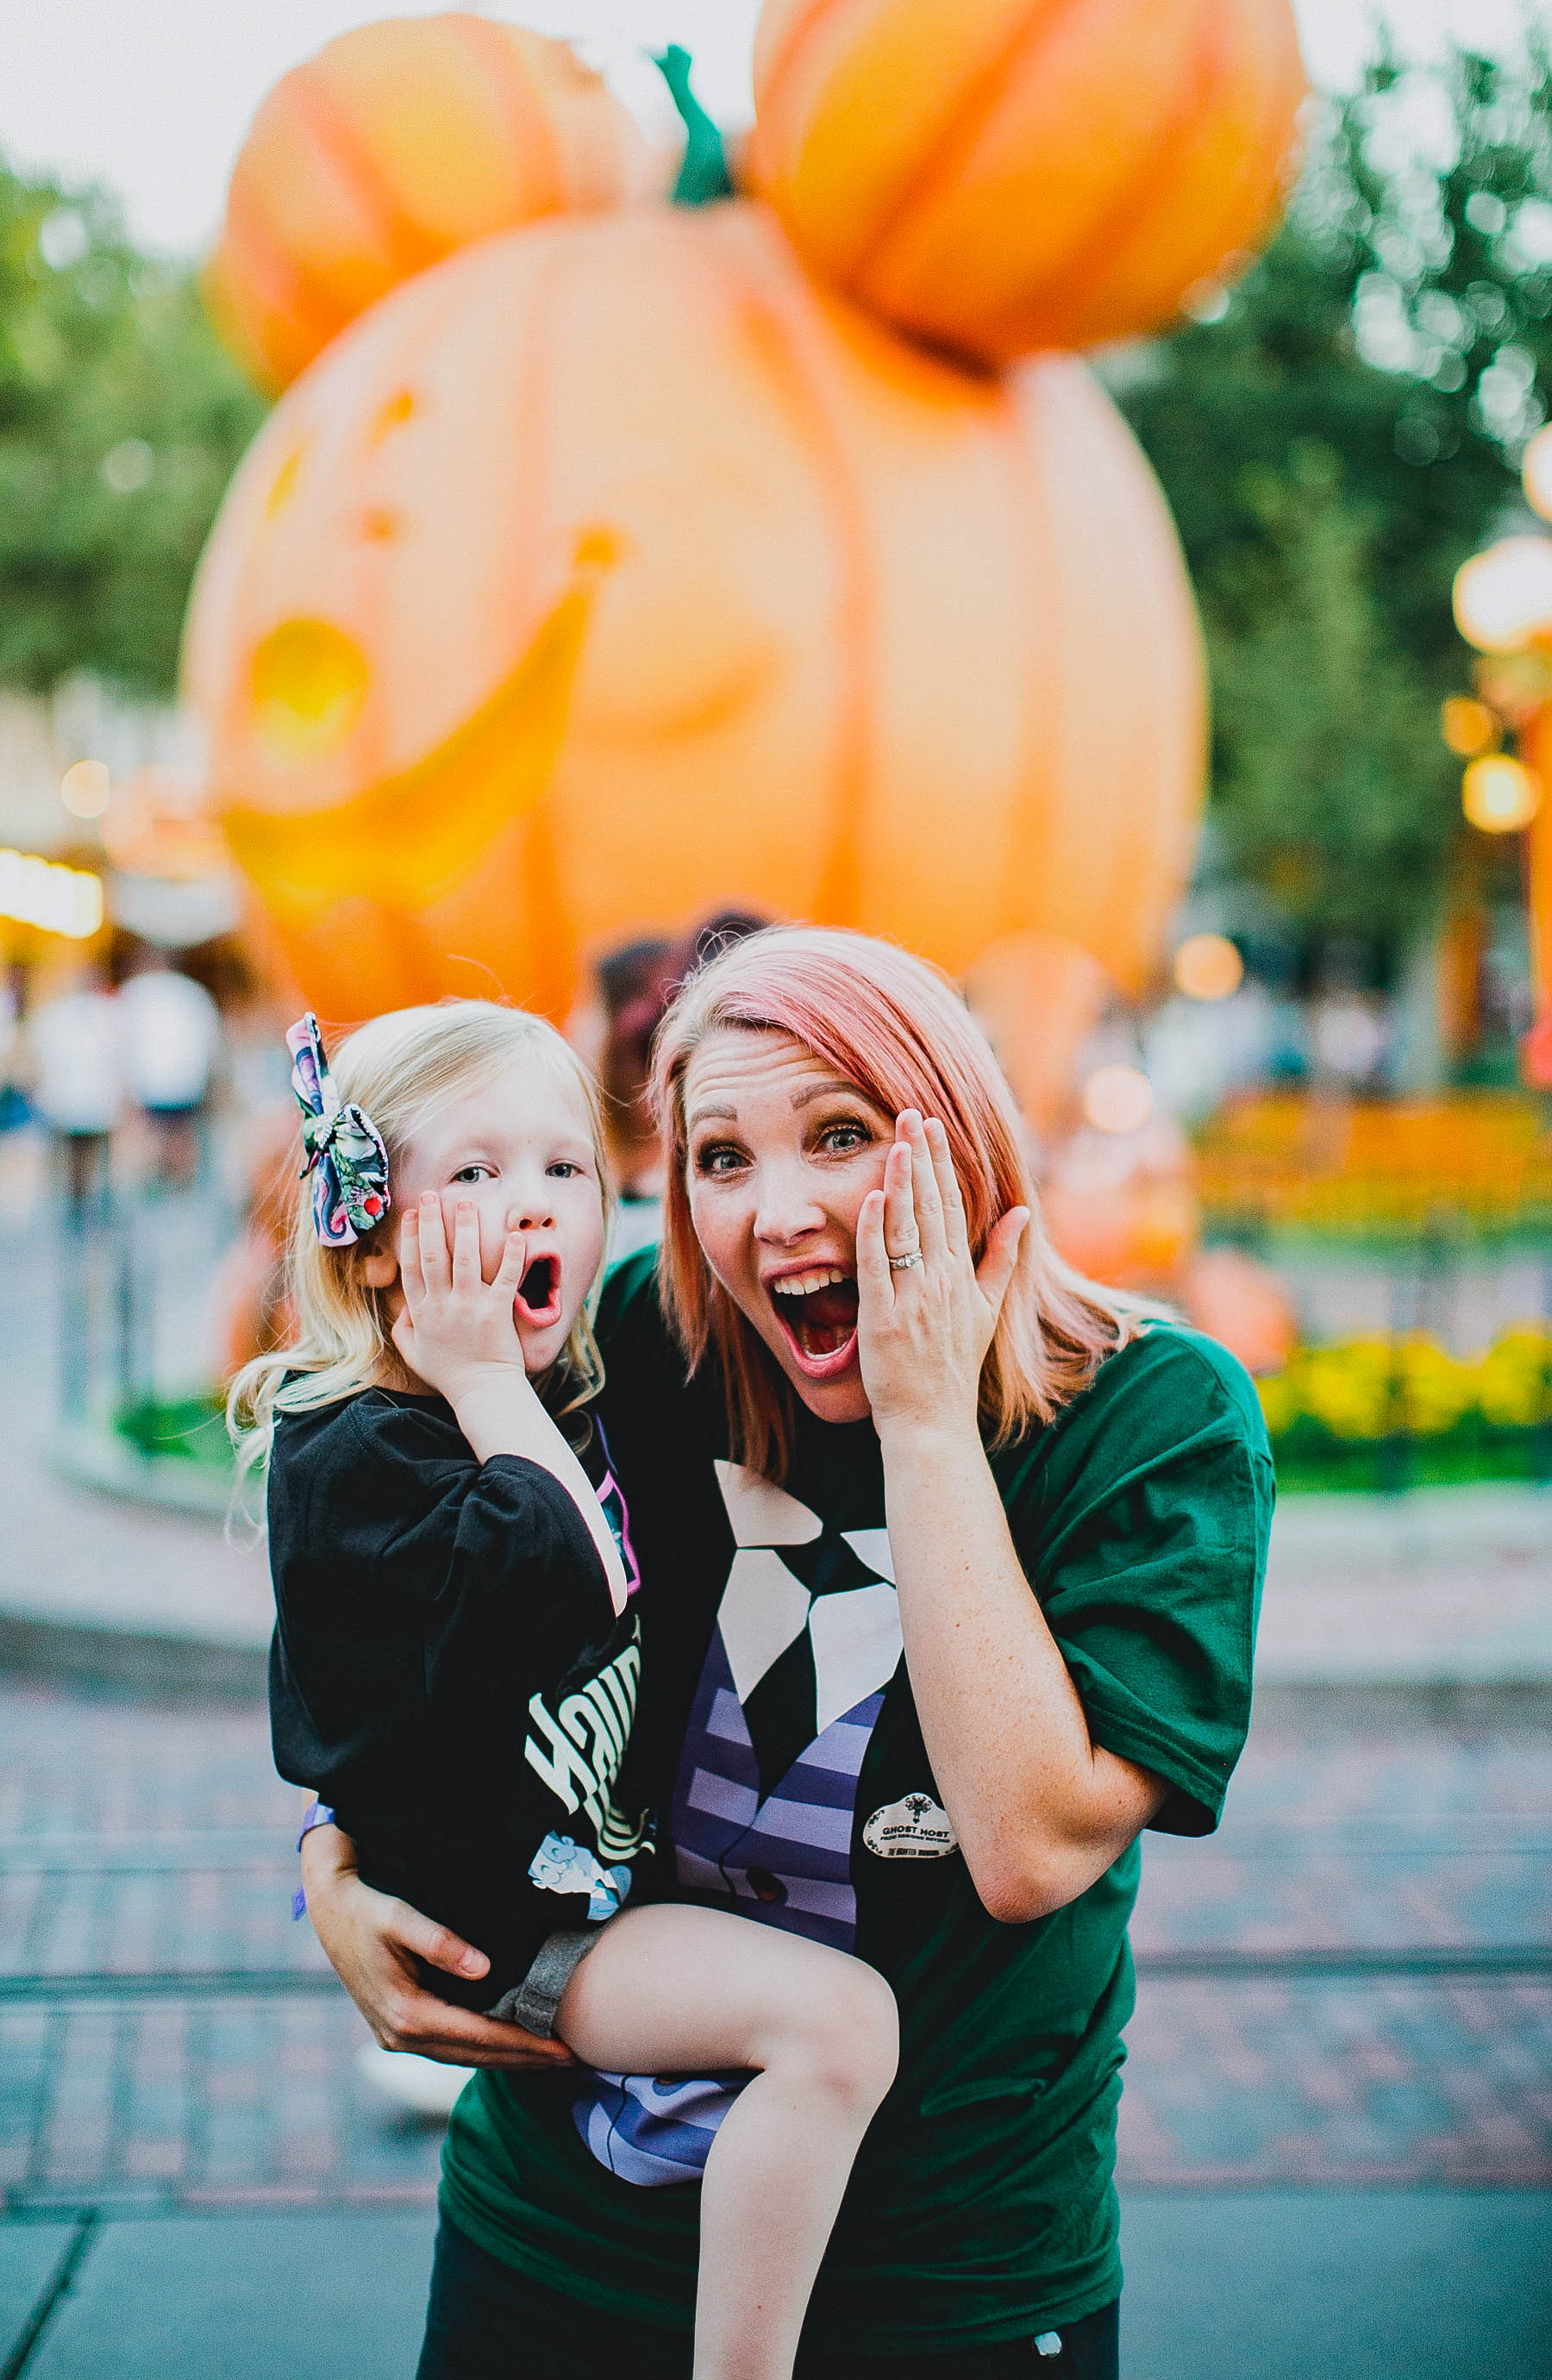 Heading to the Happiest Place on Earth? Check out the Ultimate Guide to Disneyland Halloween 2018 for must sees, must rides, and must eats!